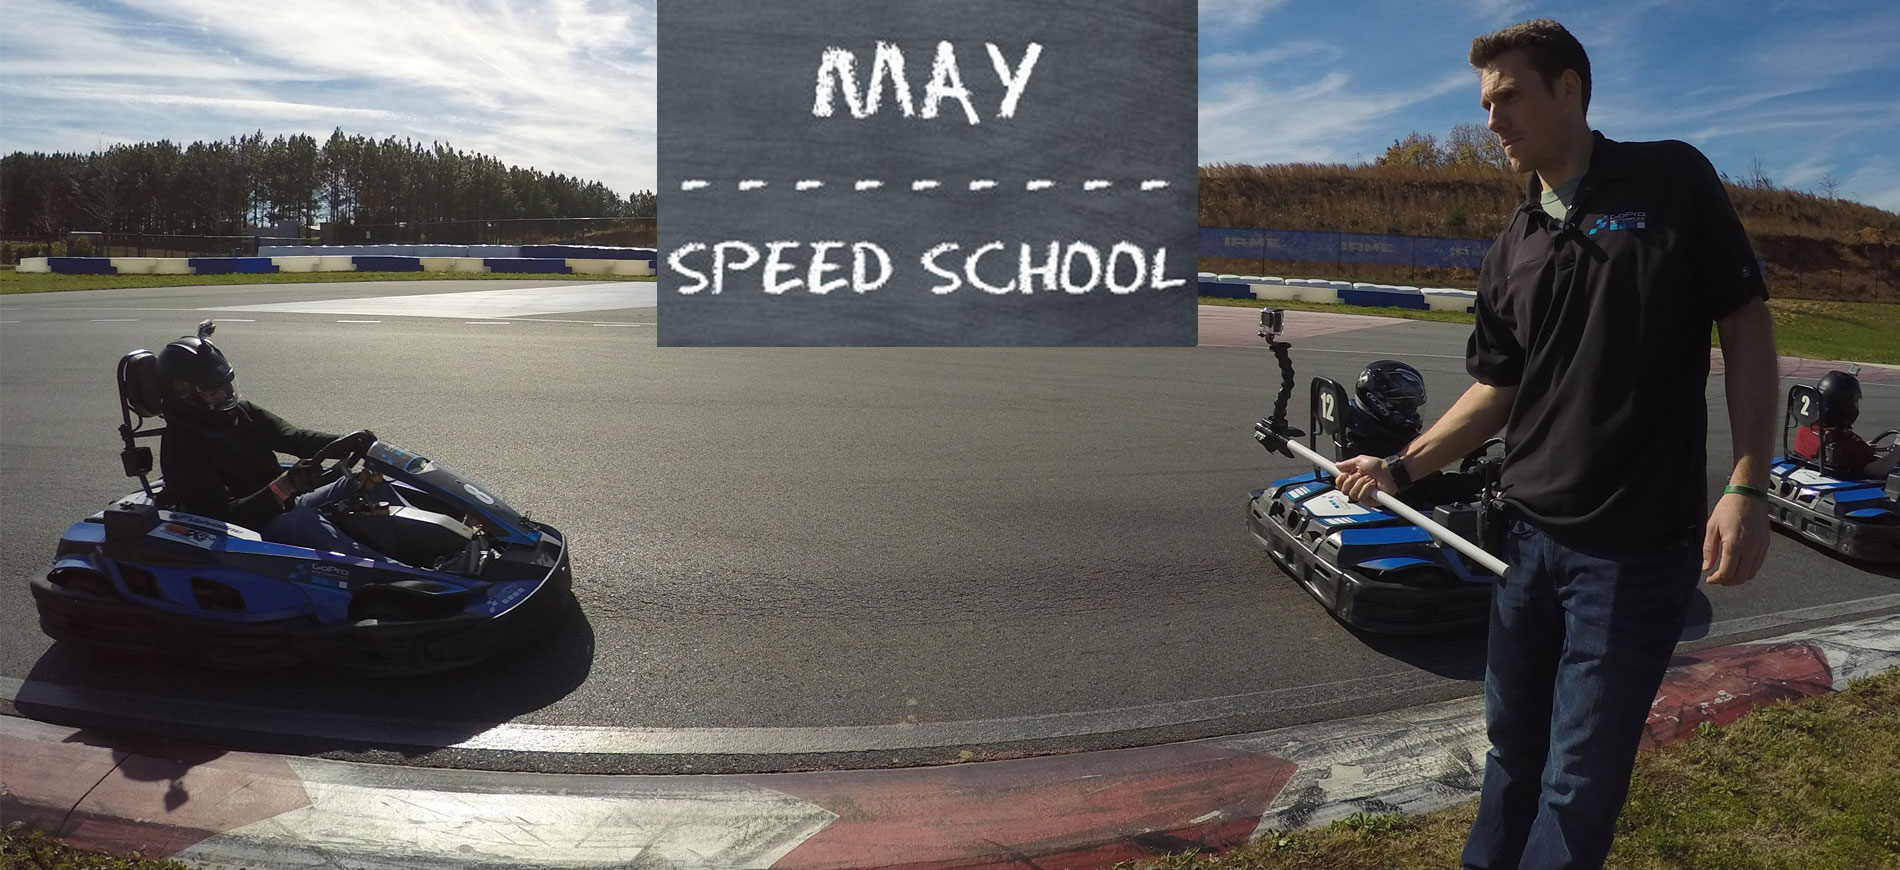 Speed School, May 6